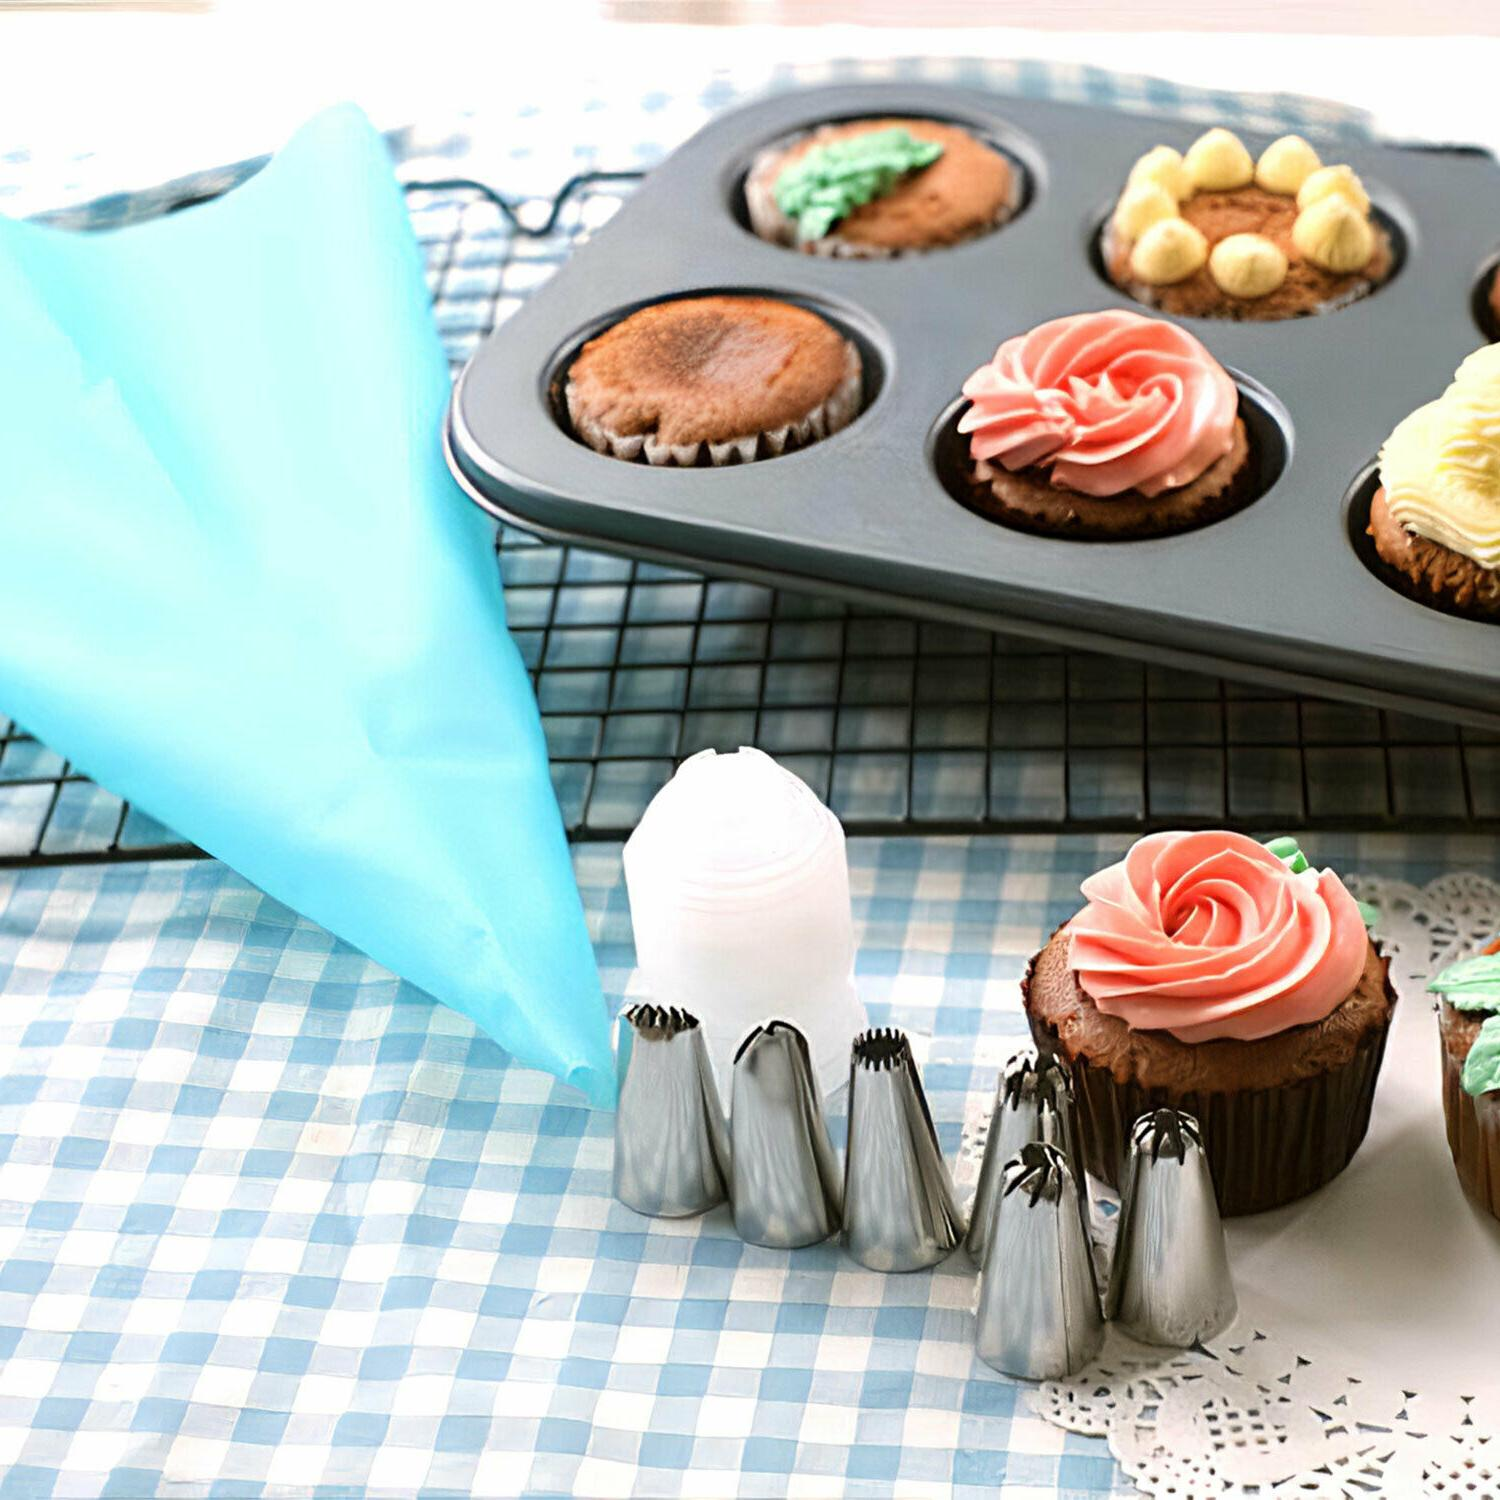 20PC Pastry Bag Nozzle Set Cooking Kitchen Cake Tool